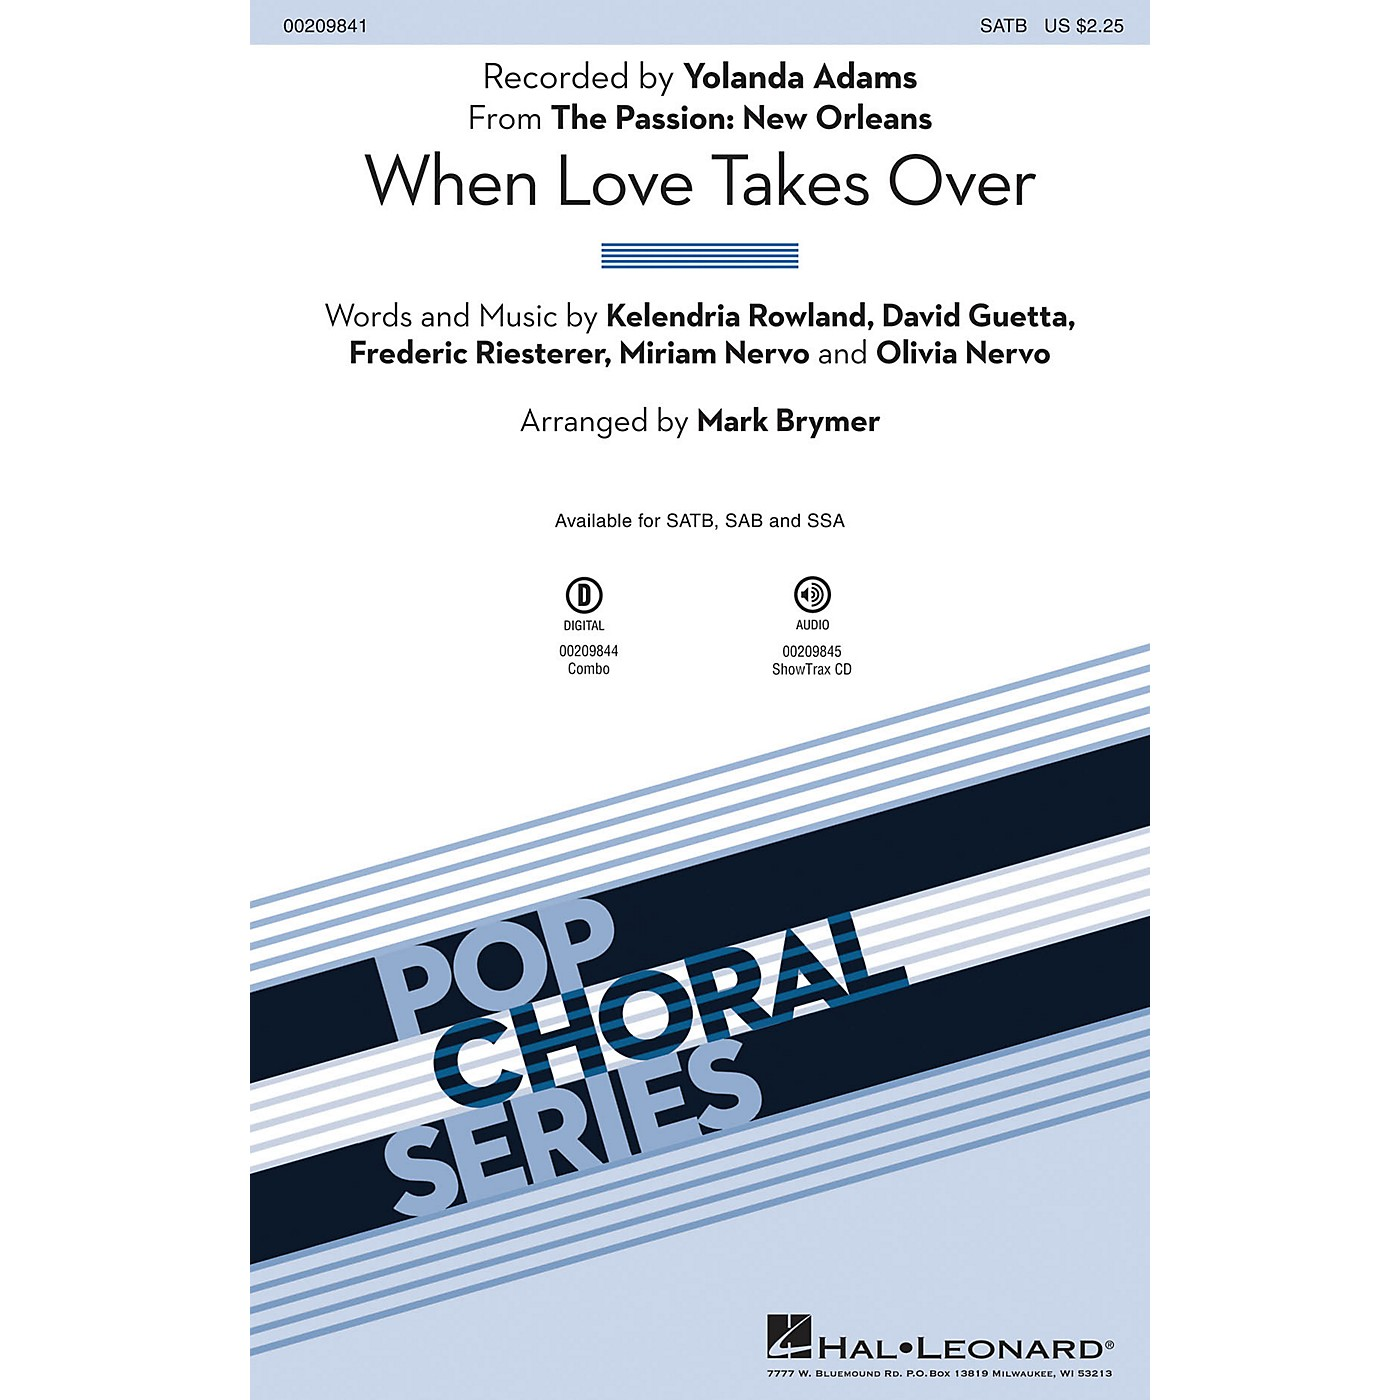 Hal Leonard When Love Takes Over (from The Passion: New Orleans) SATB by Yolanda Adams arranged by Mark Brymer thumbnail